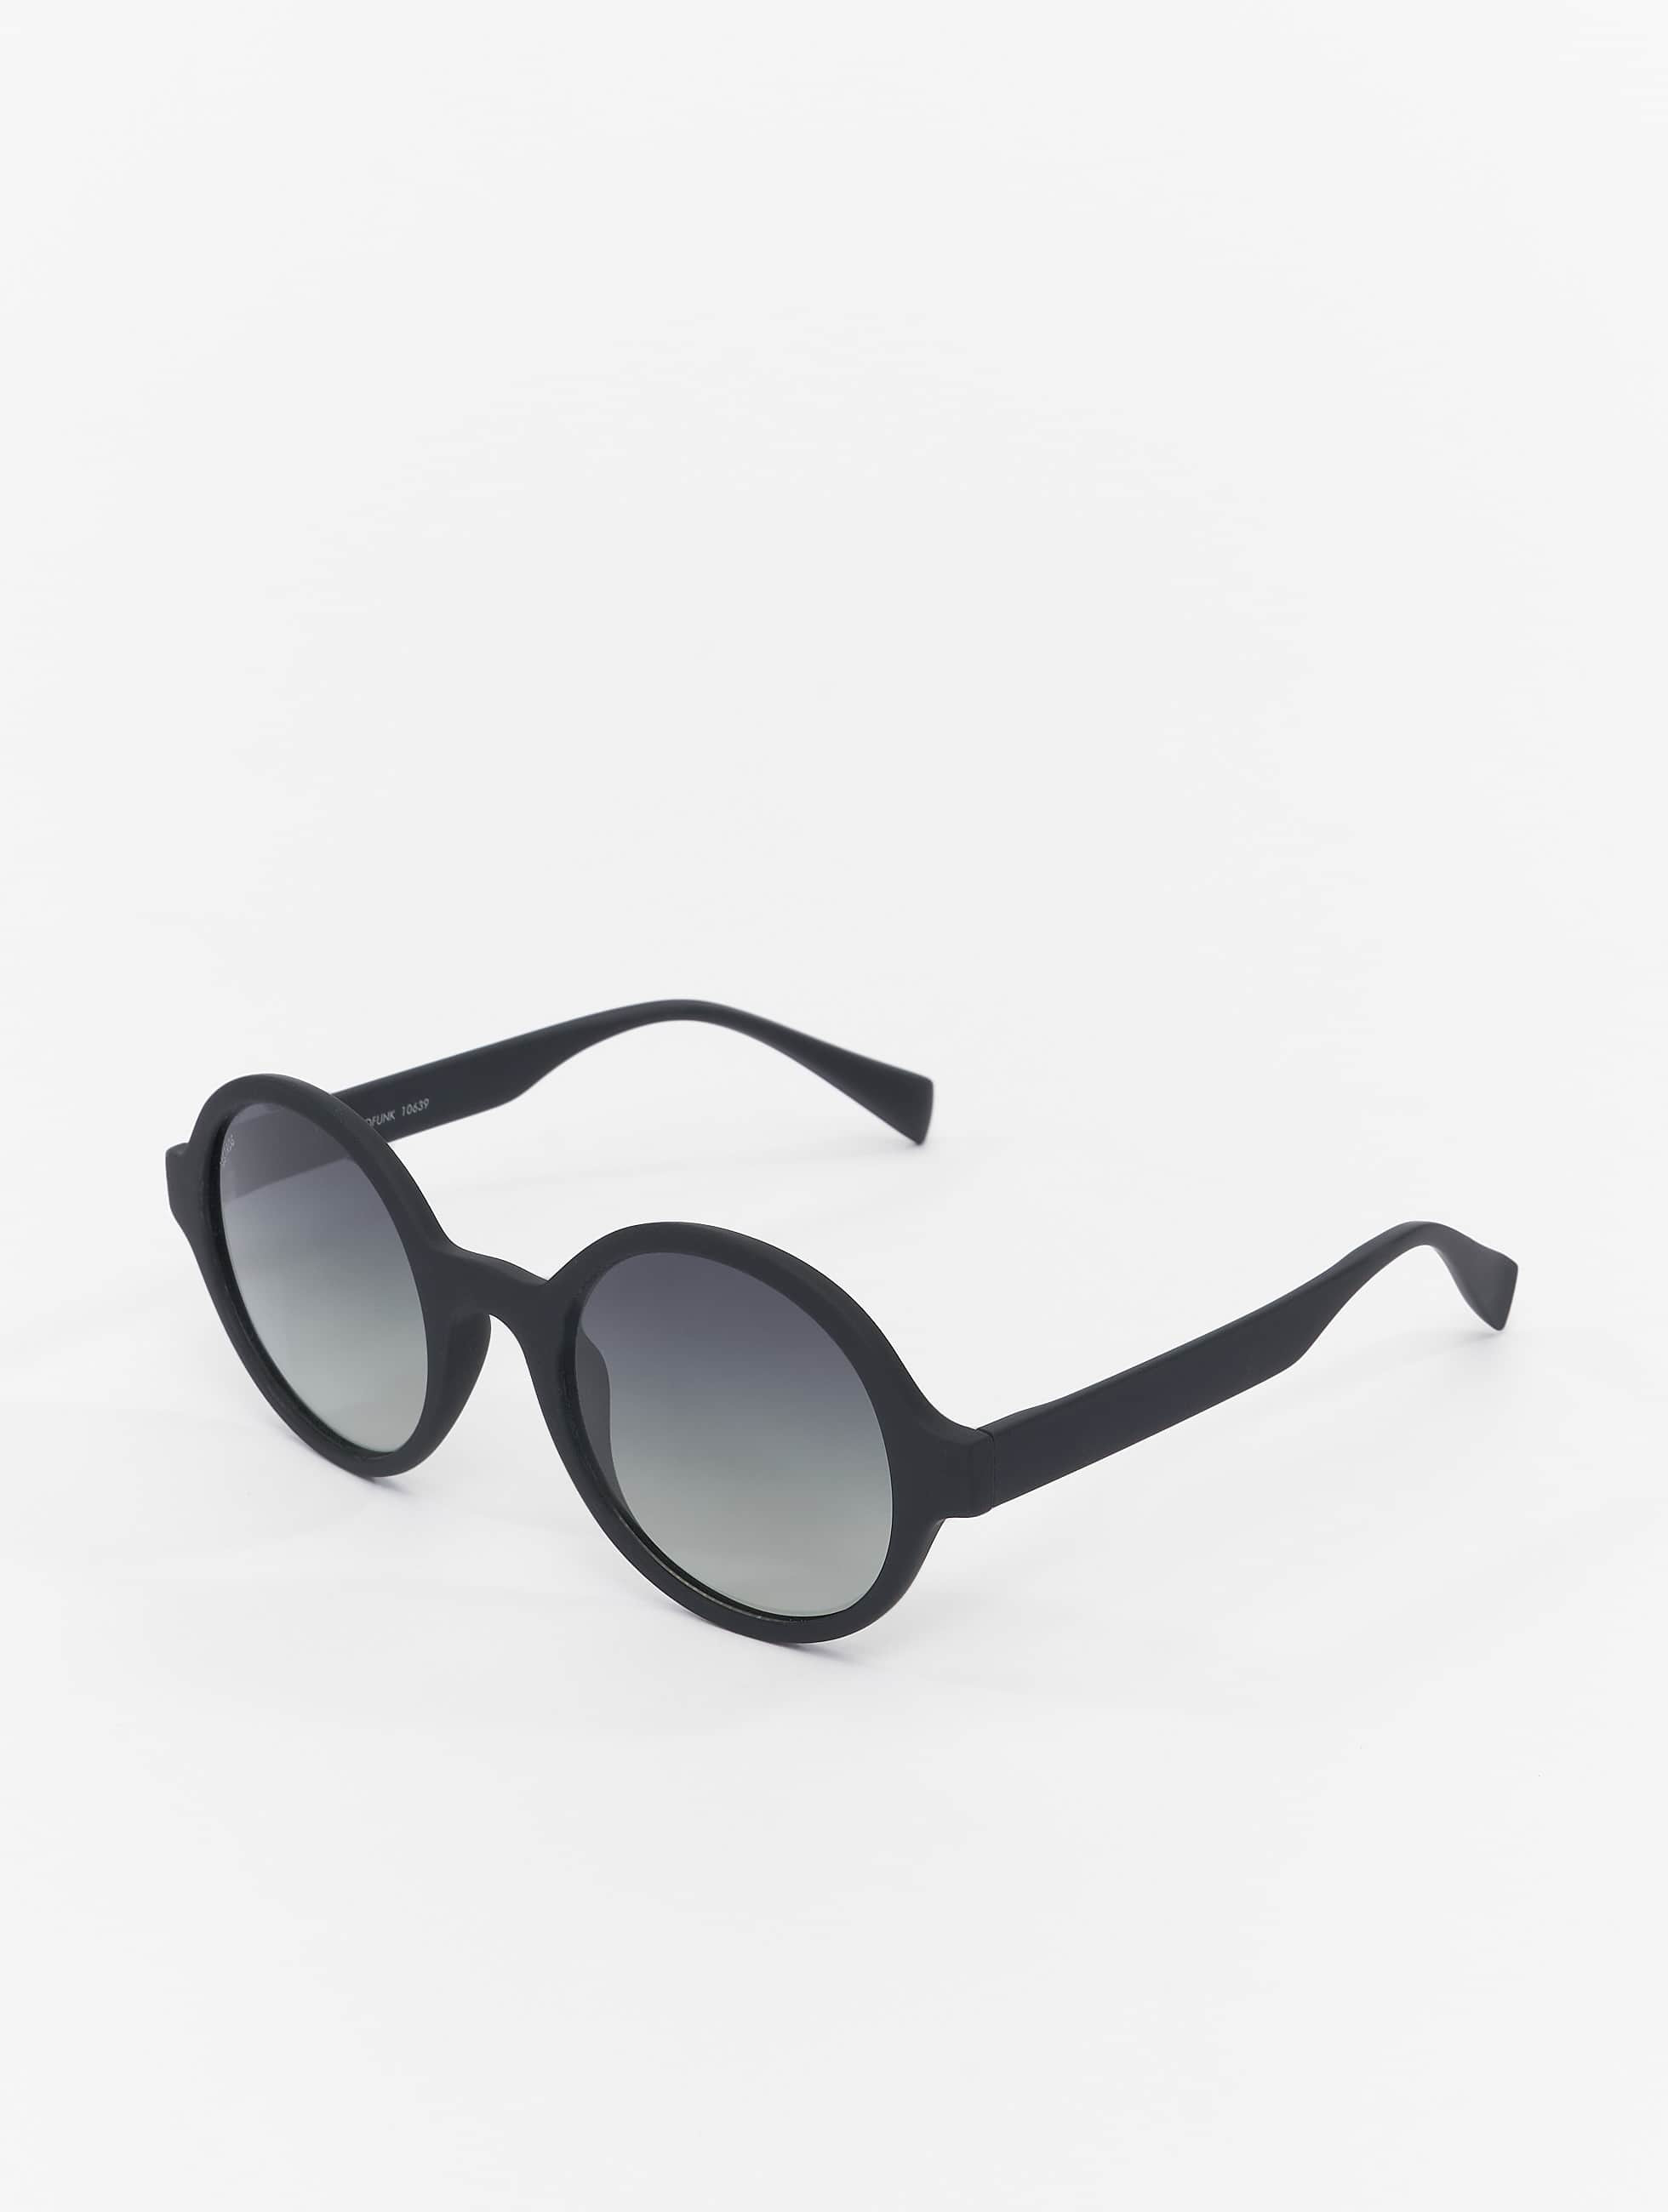 Sonnenbrille Retro Funk Polarized in schwarz